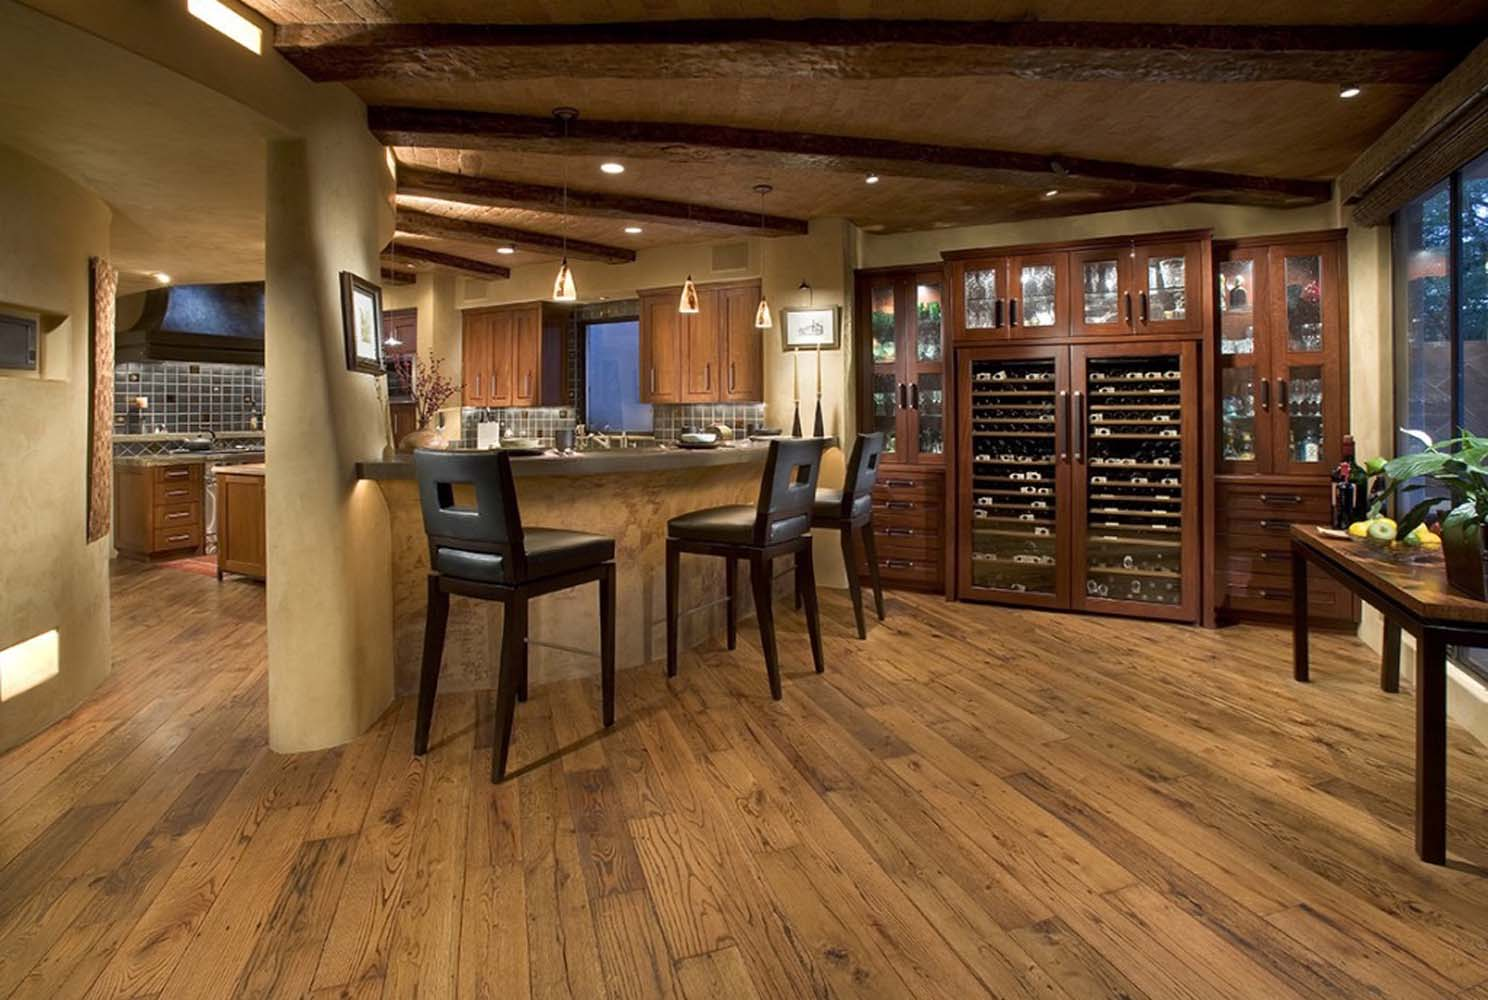 Types Of Kitchen Flooring Pros And Cons Reclaimed Laminate Flooring All About Flooring Designs